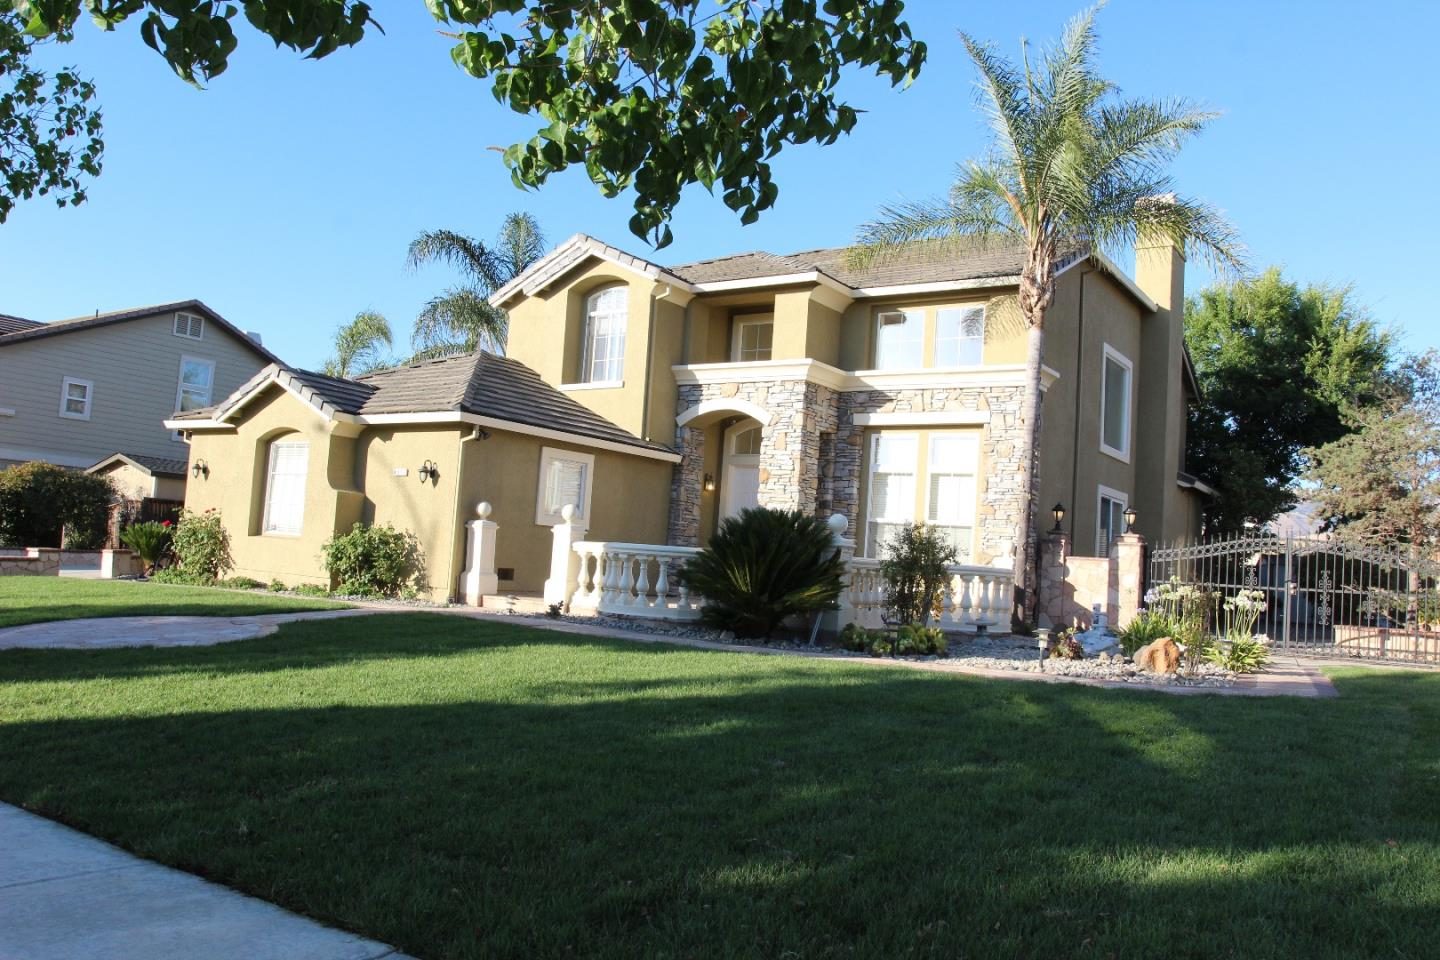 Additional photo for property listing at 4567 Terra Place  San Jose, カリフォルニア 95121 アメリカ合衆国